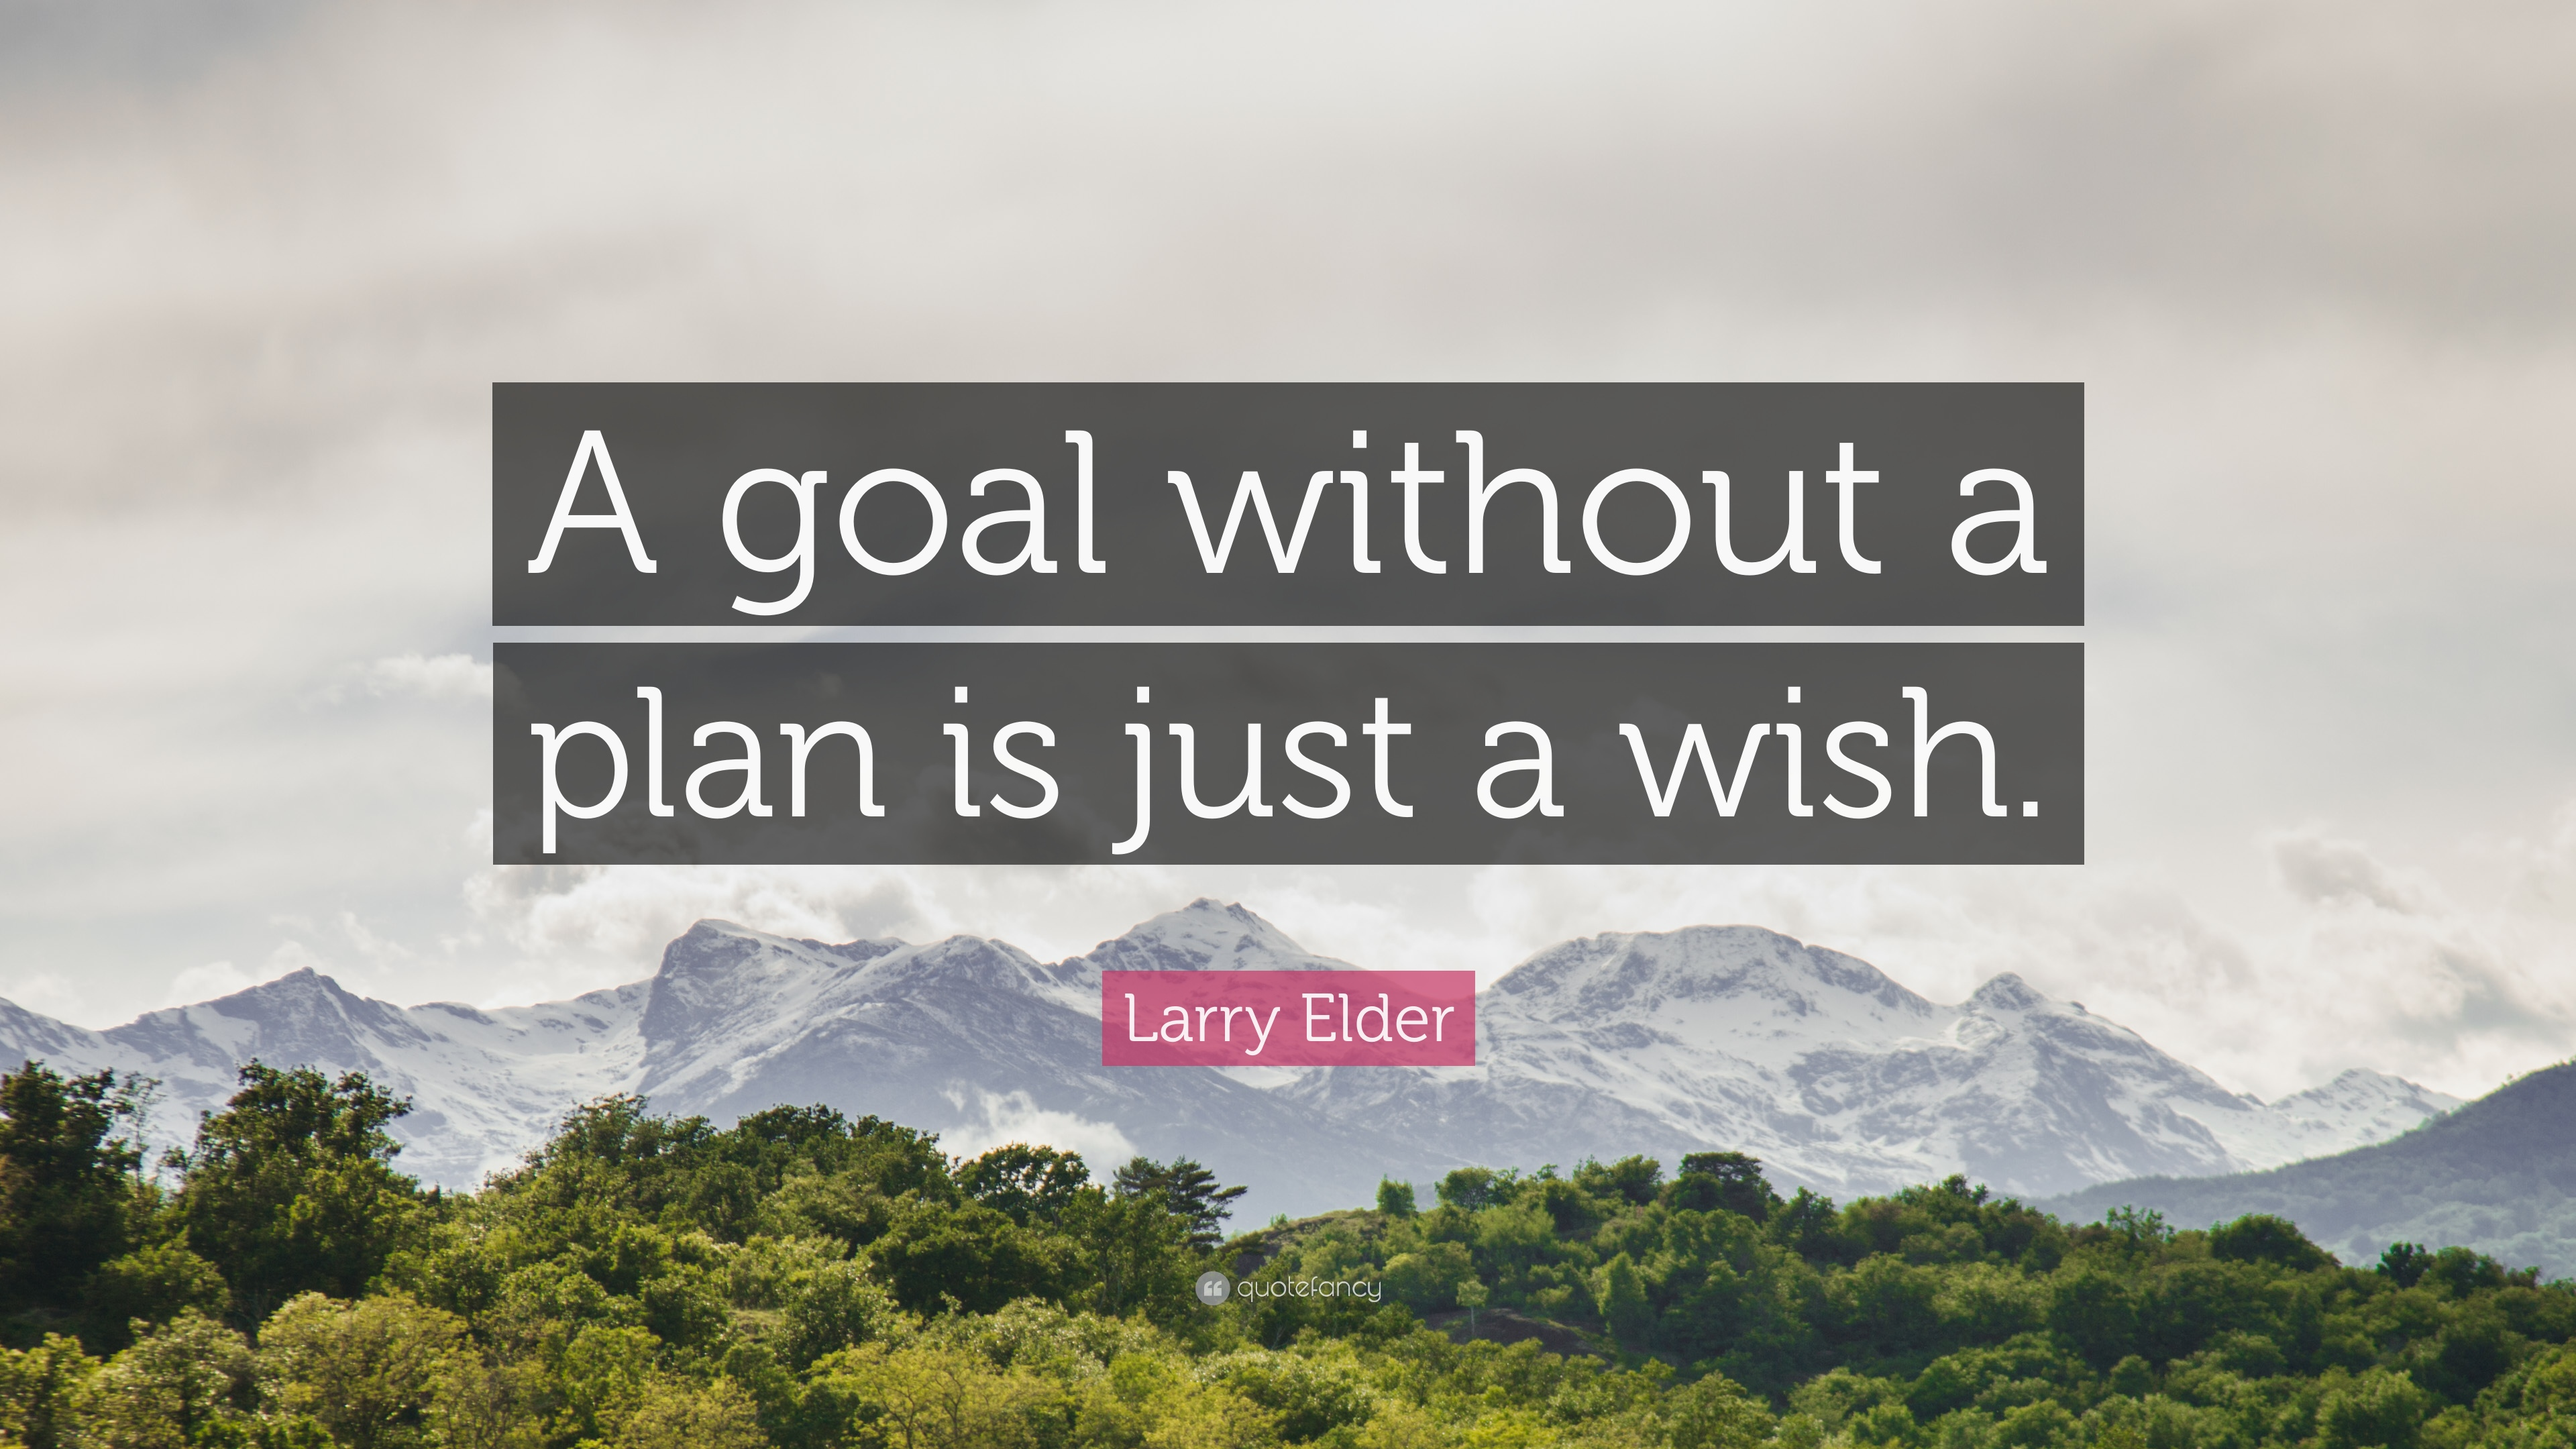 Larry Elder Quote: U201cA Goal Without A Plan Is Just A Wish.u201d